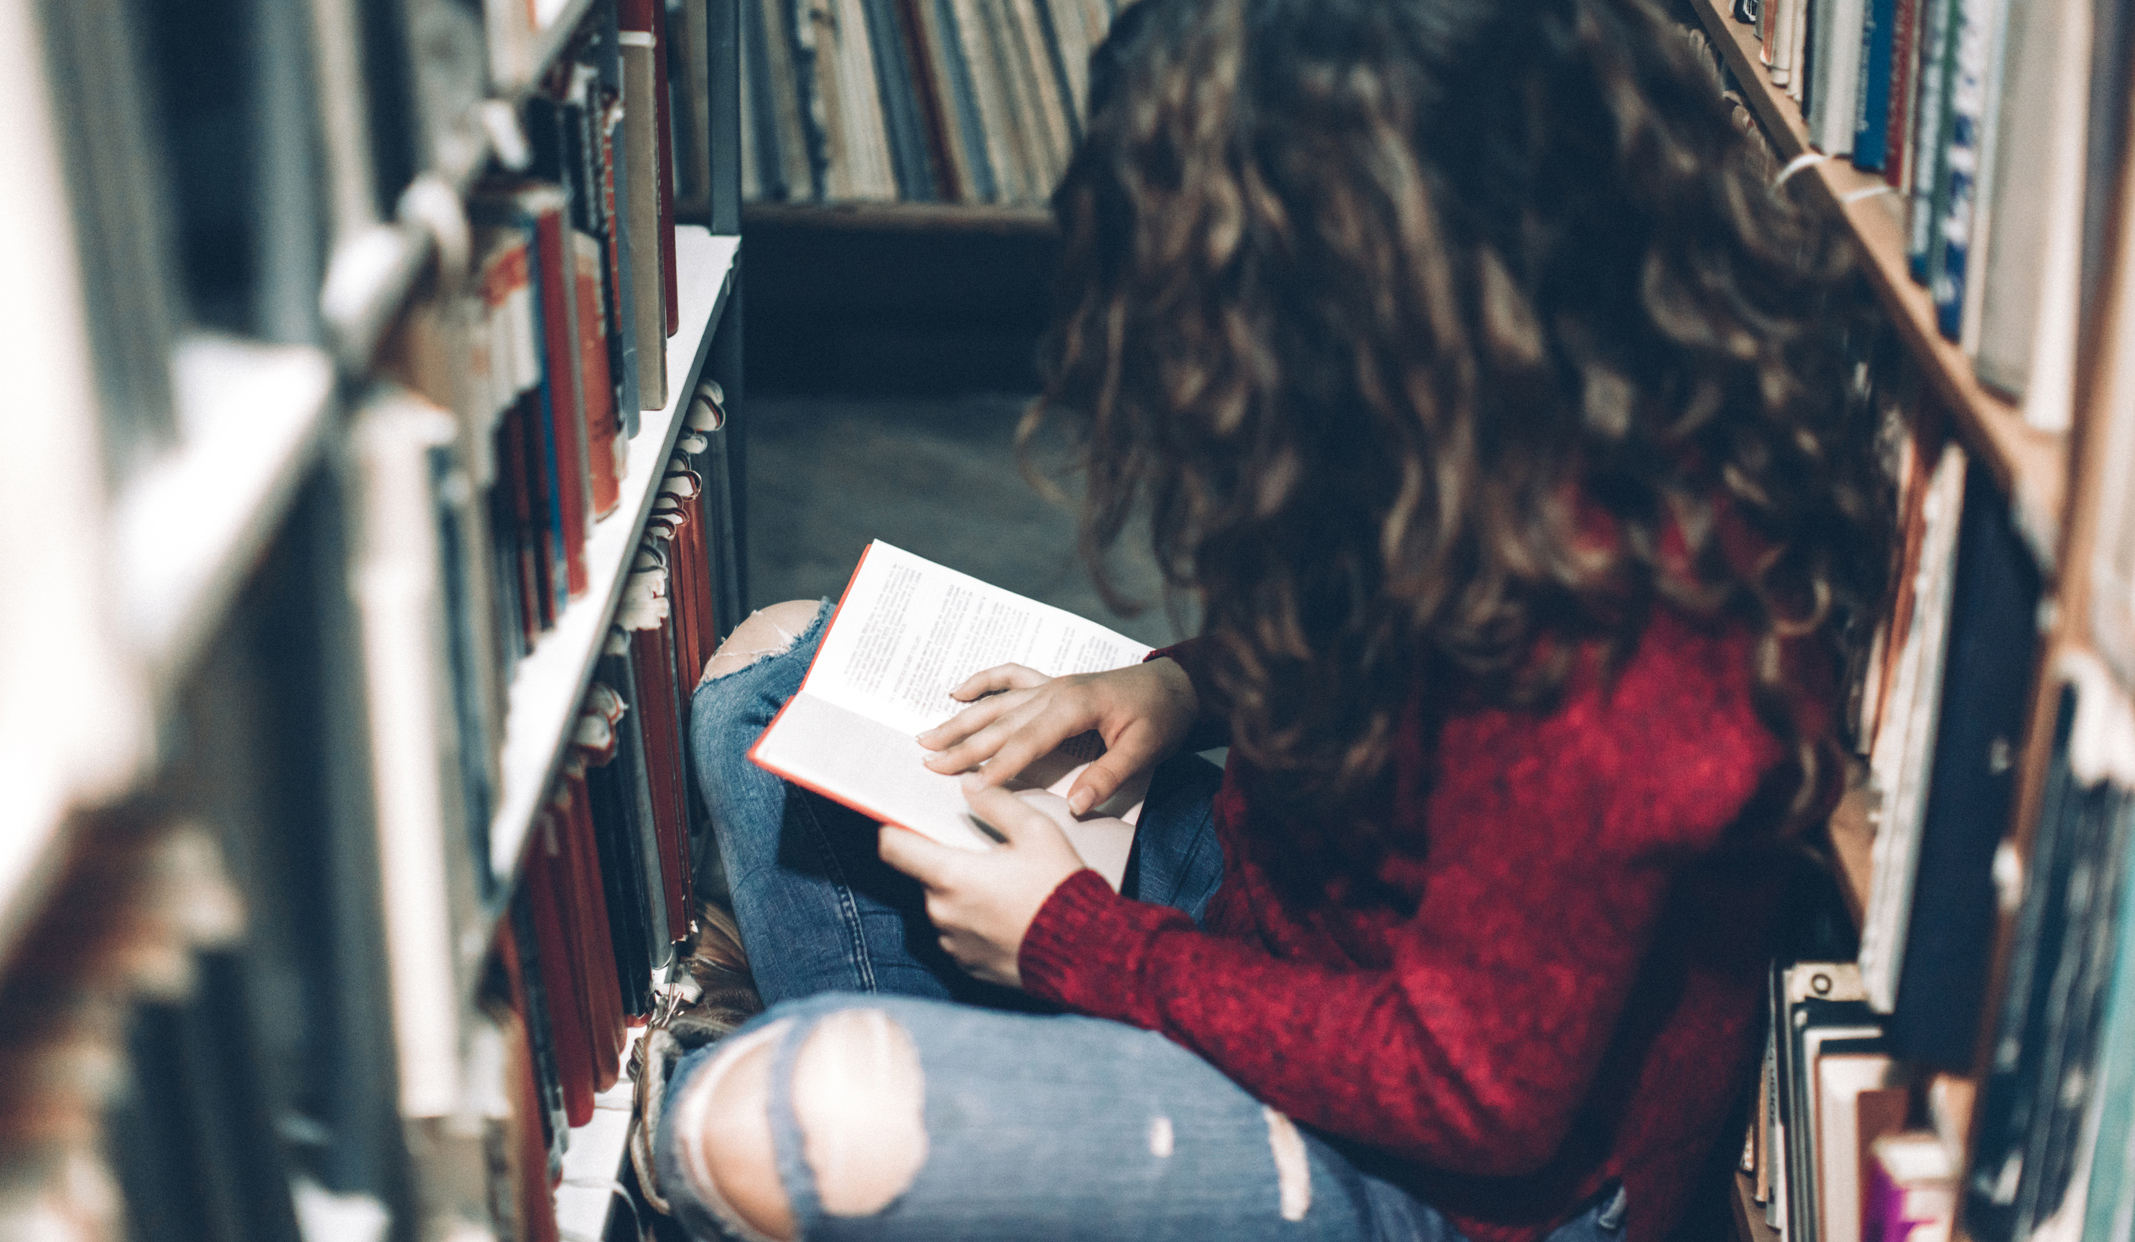 Student reading in stacks